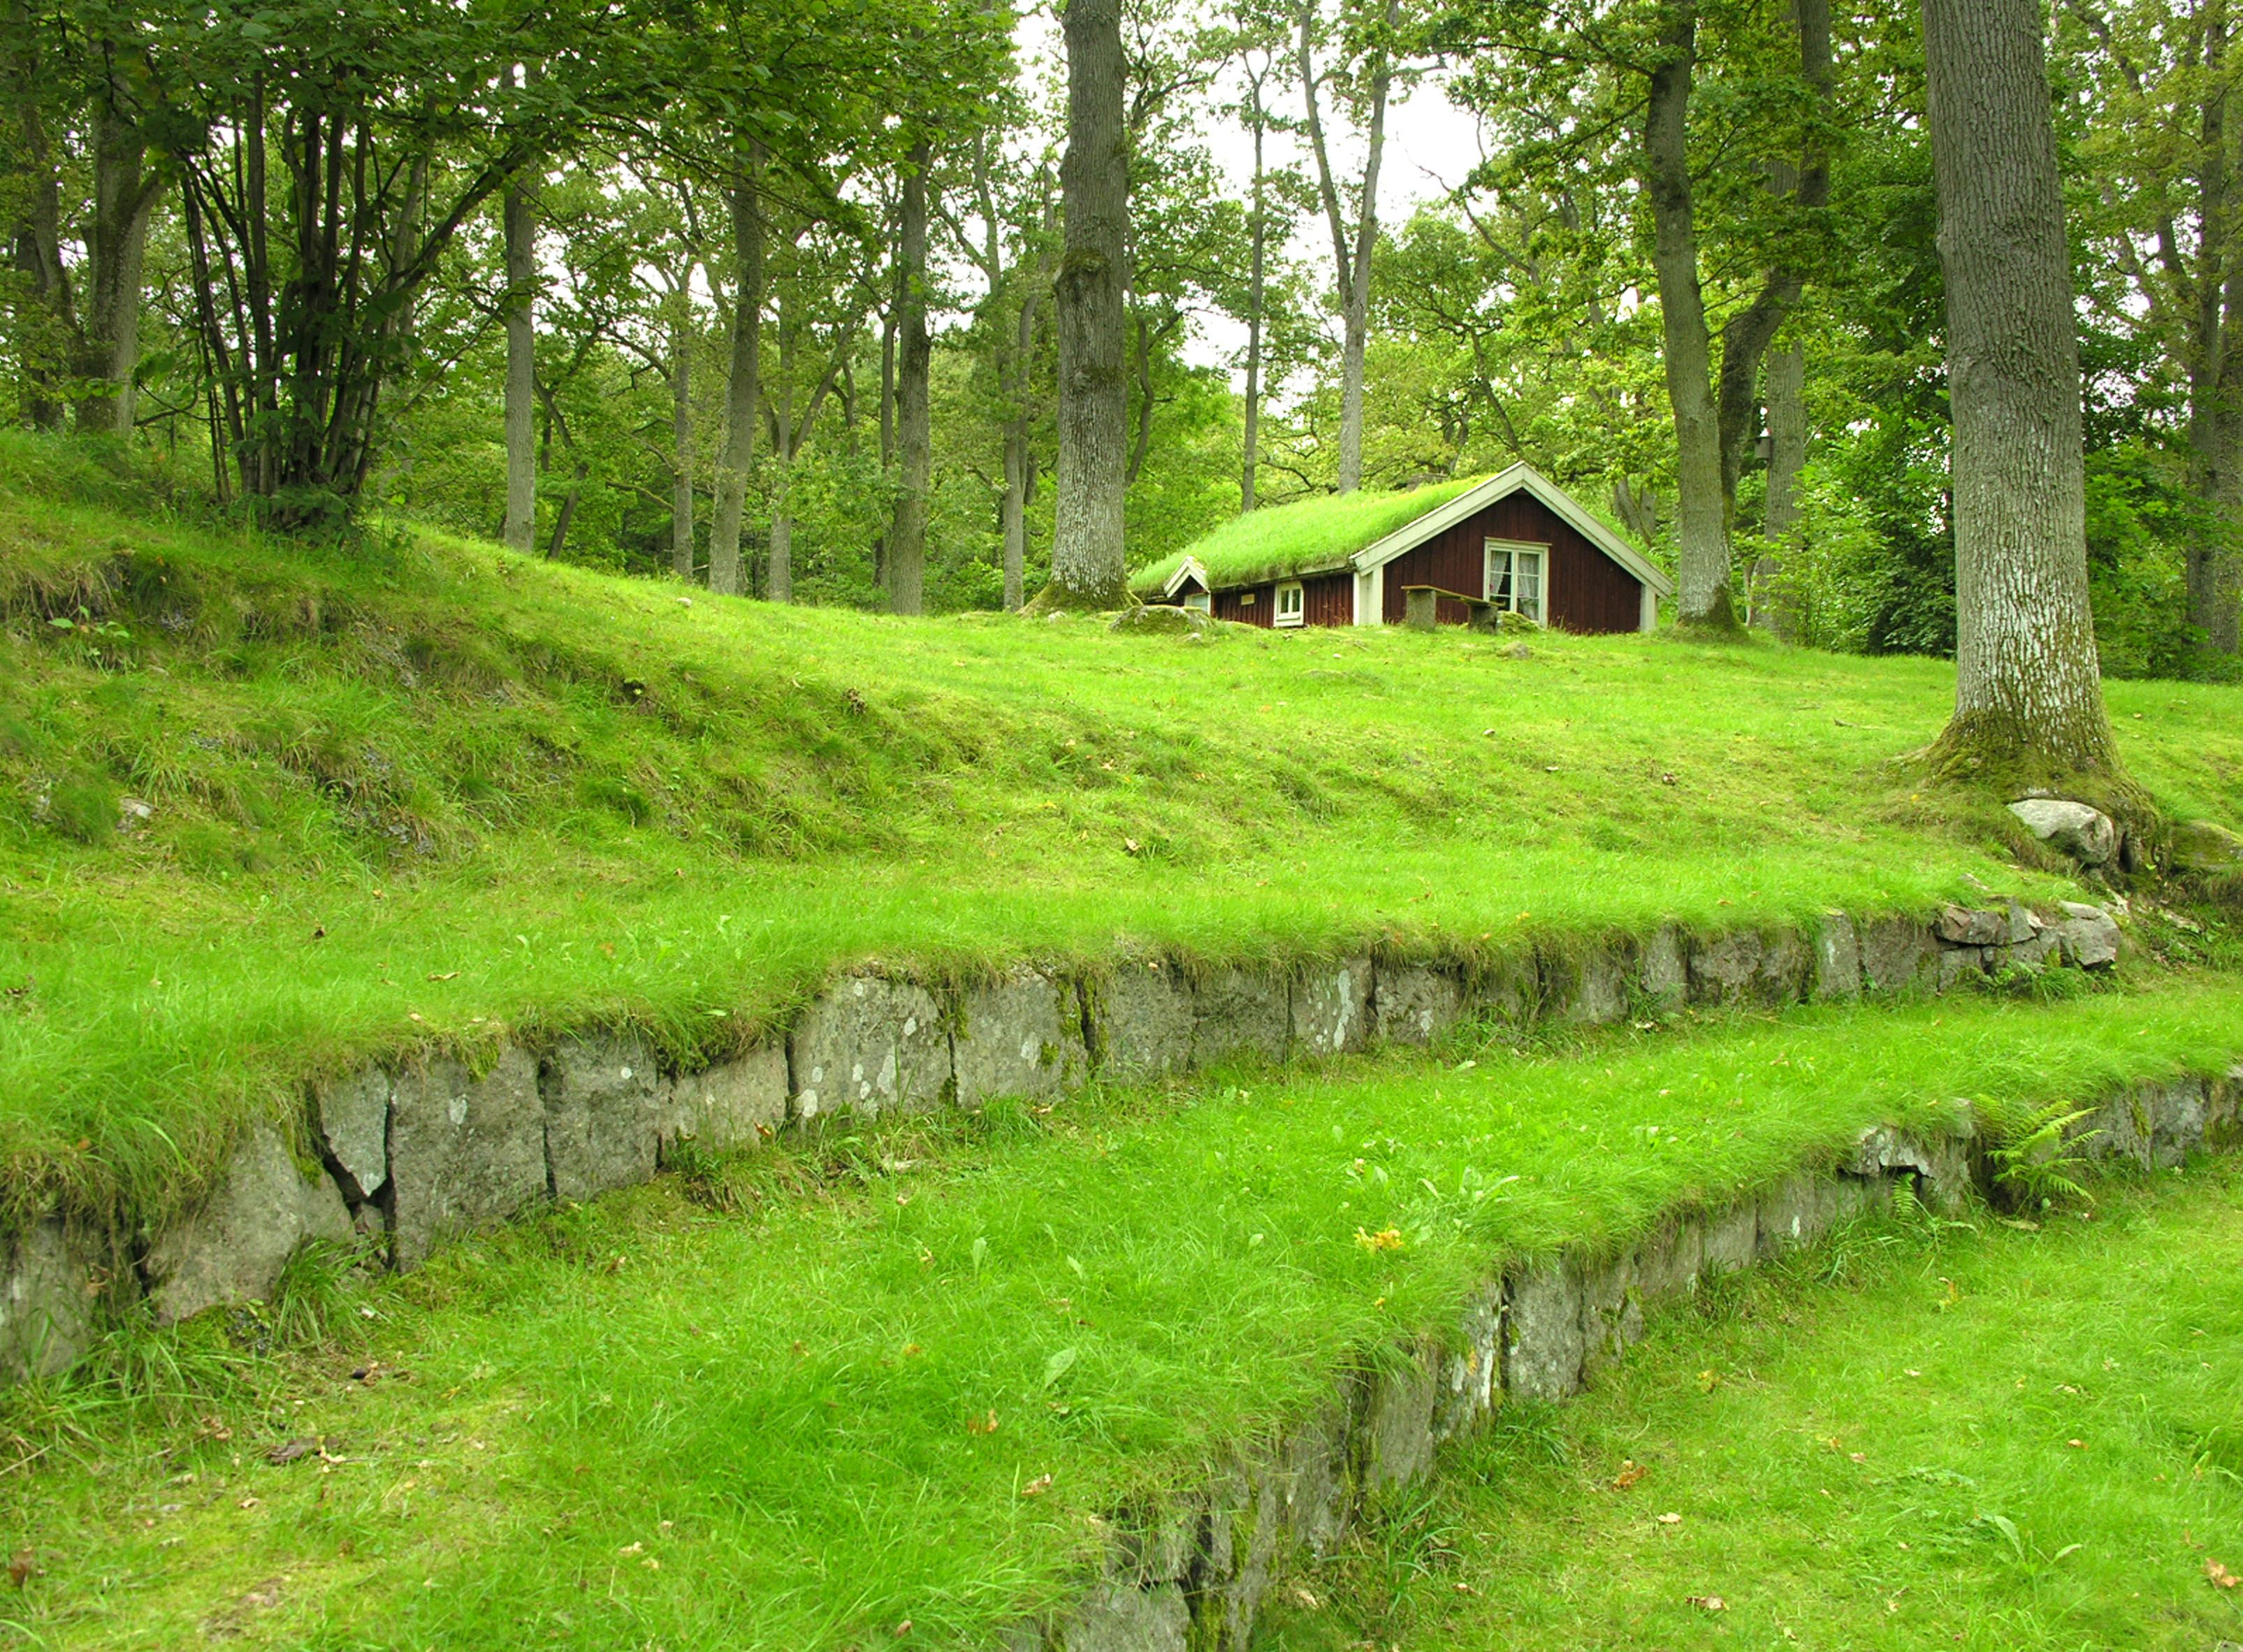 Johan Blomqvist, Ekbacken - Amphitheater in a historical environment